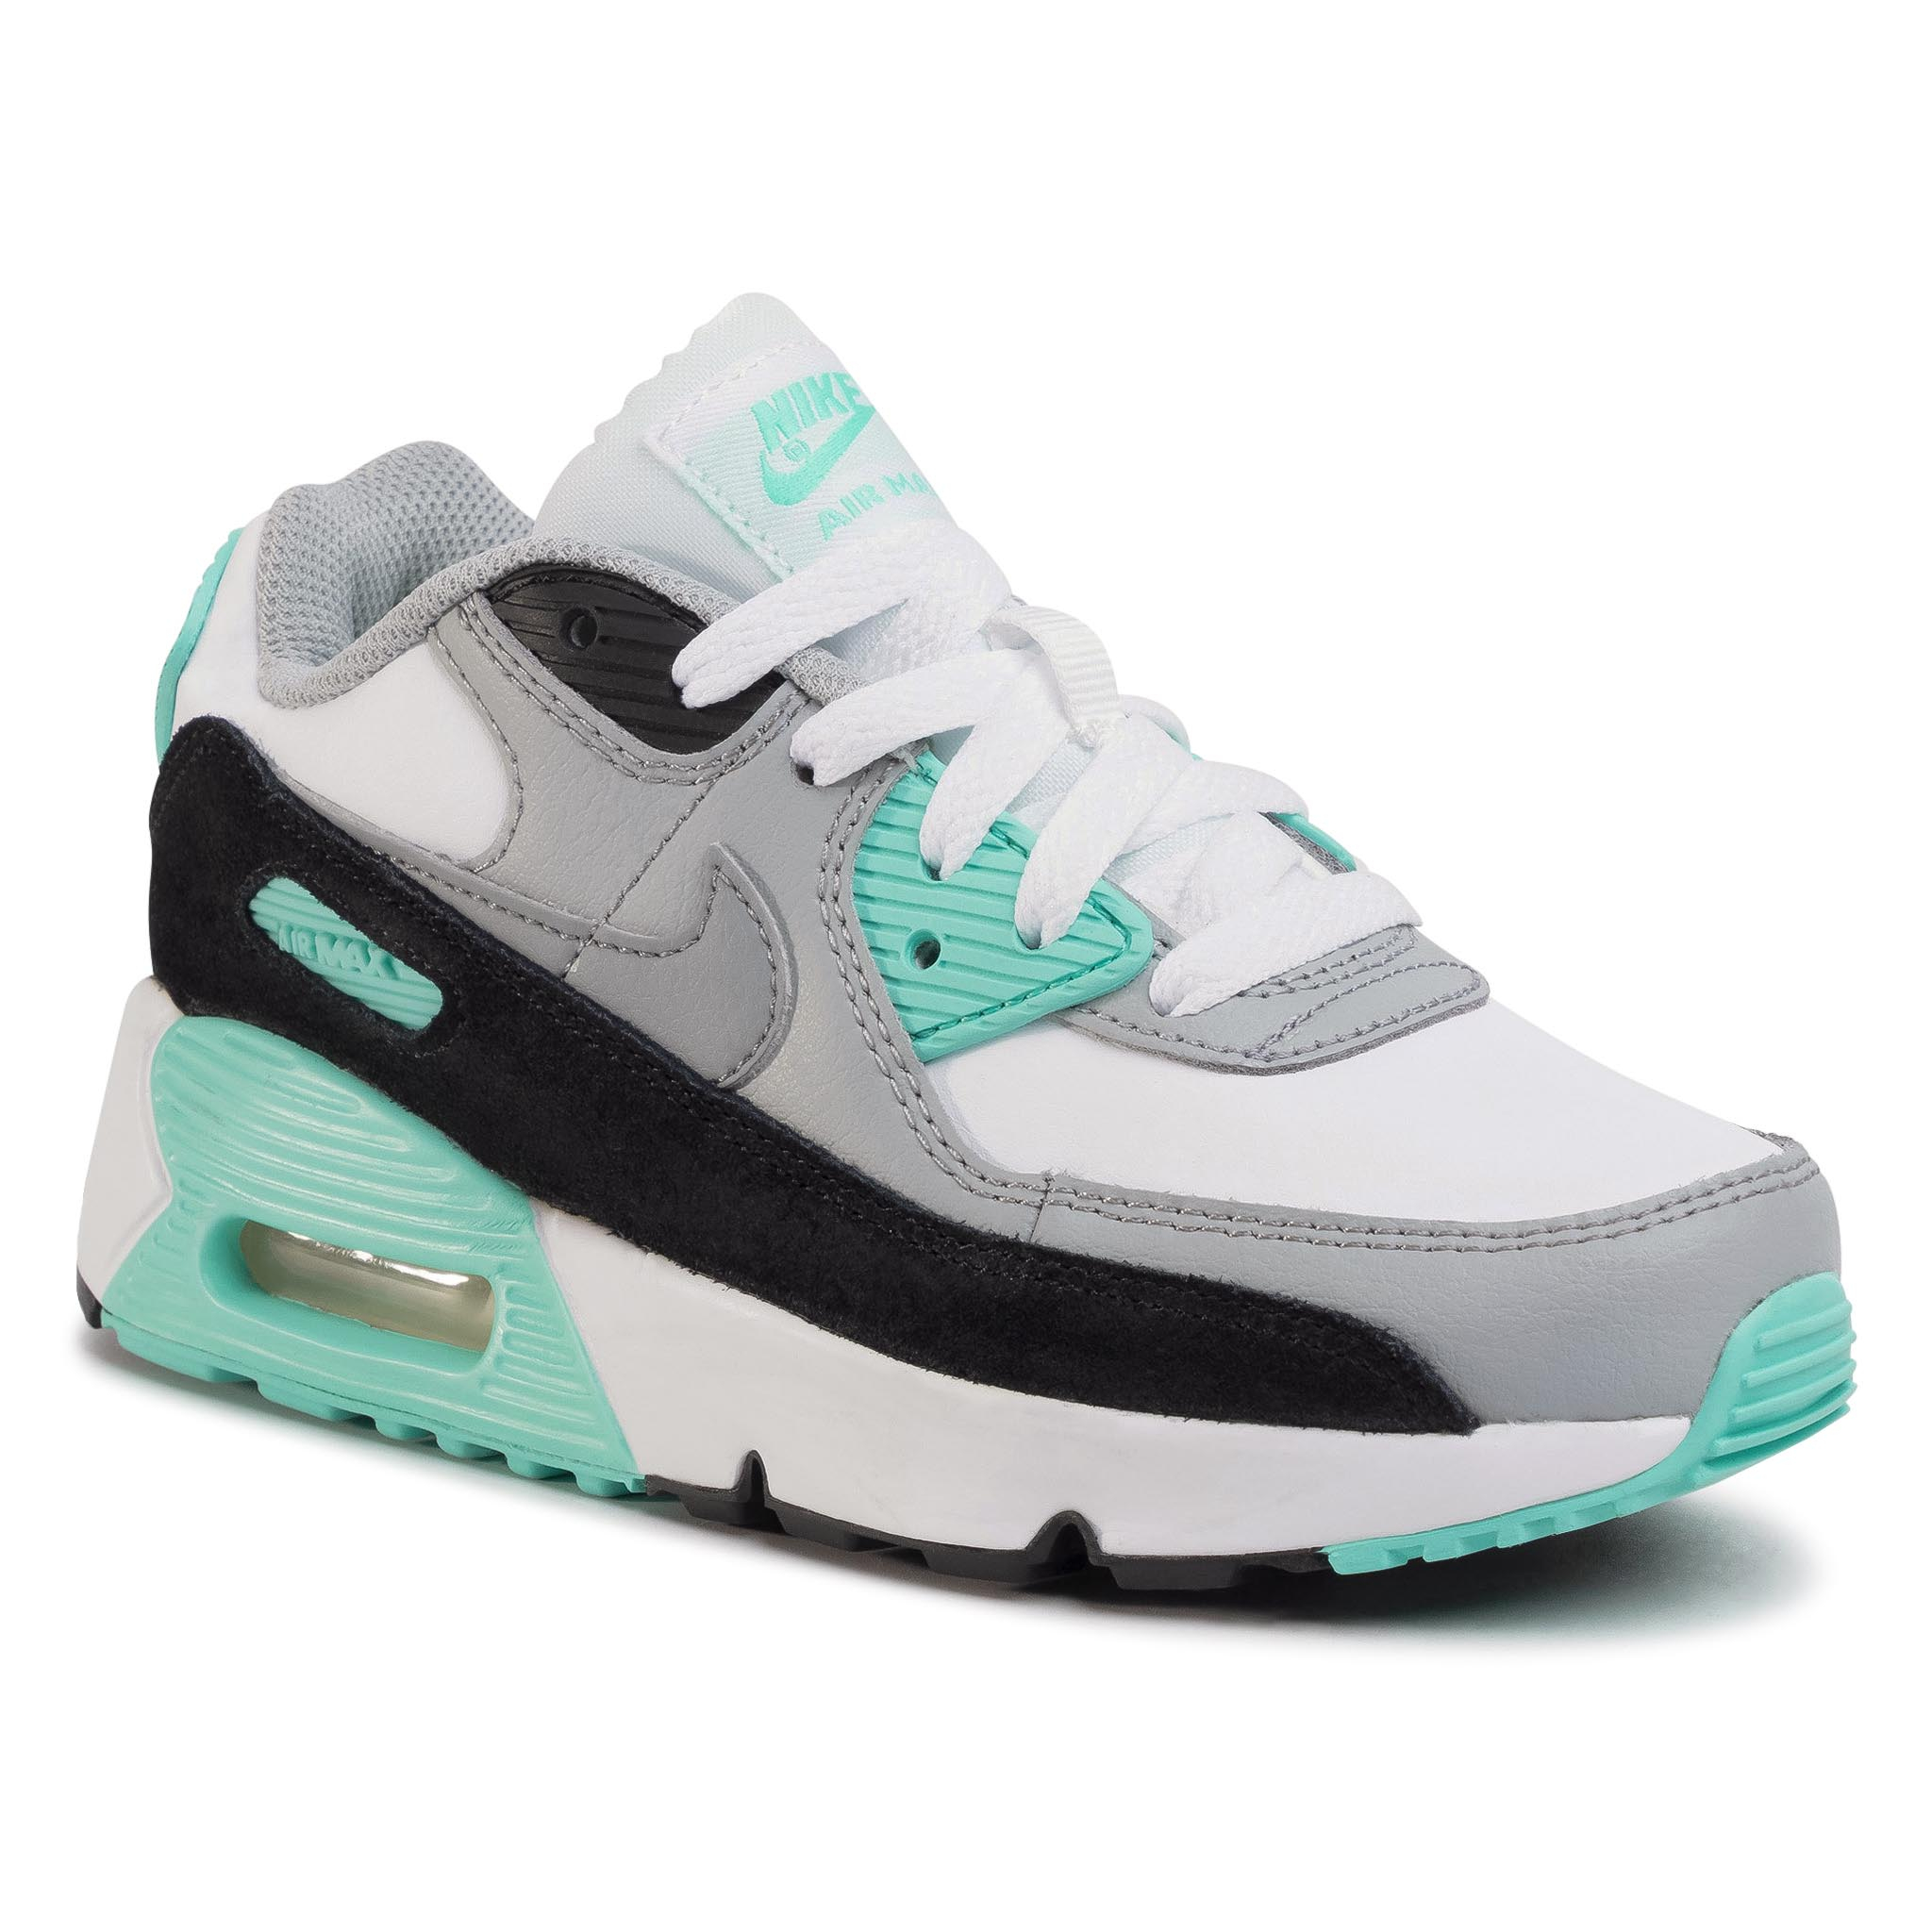 Topánky NIKE - Air Max 90 Ltr (Ps) CD6867 102 White/Particle Grey